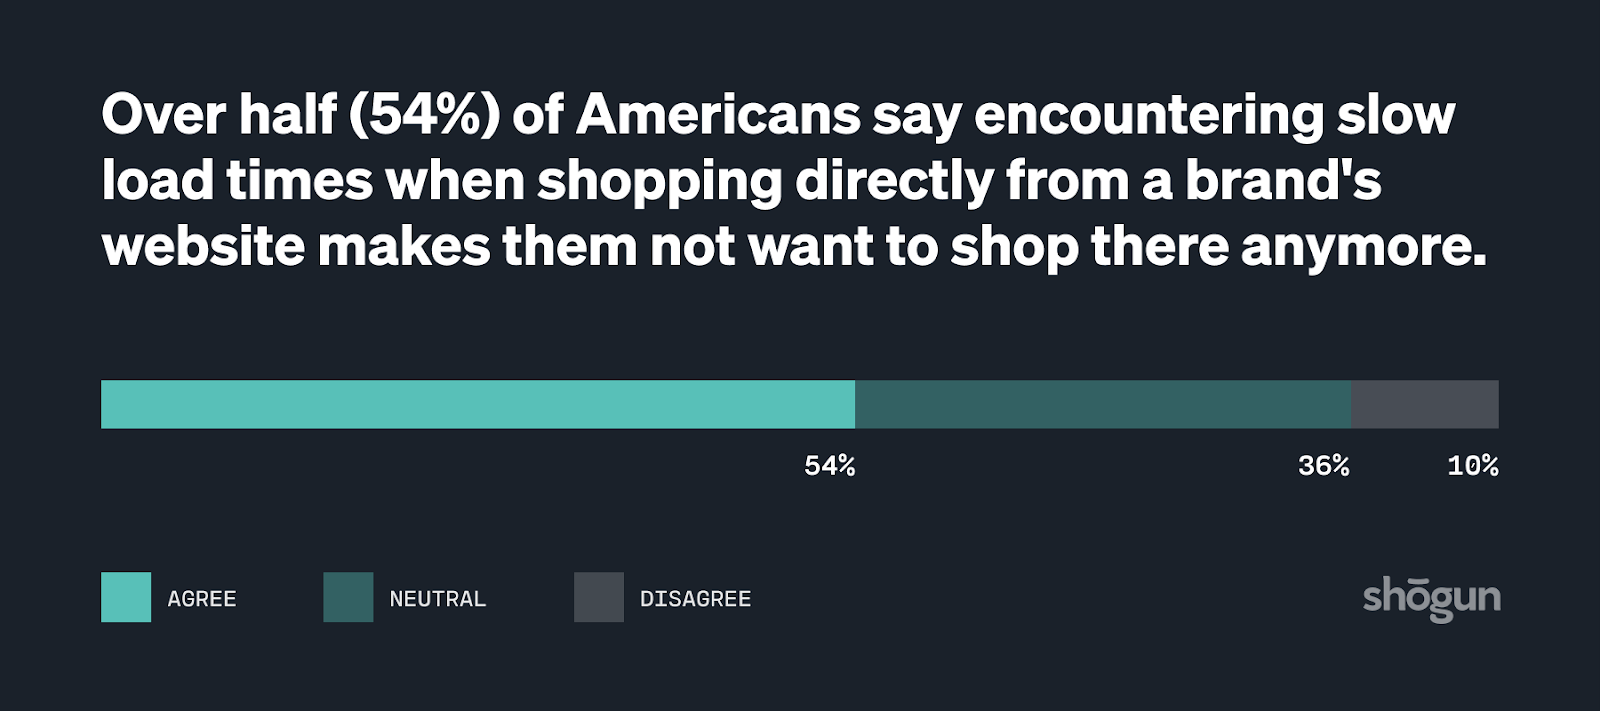 Bar graph showing the percentage of Americans who say that slow site speeds negatively impacts their shopping experience